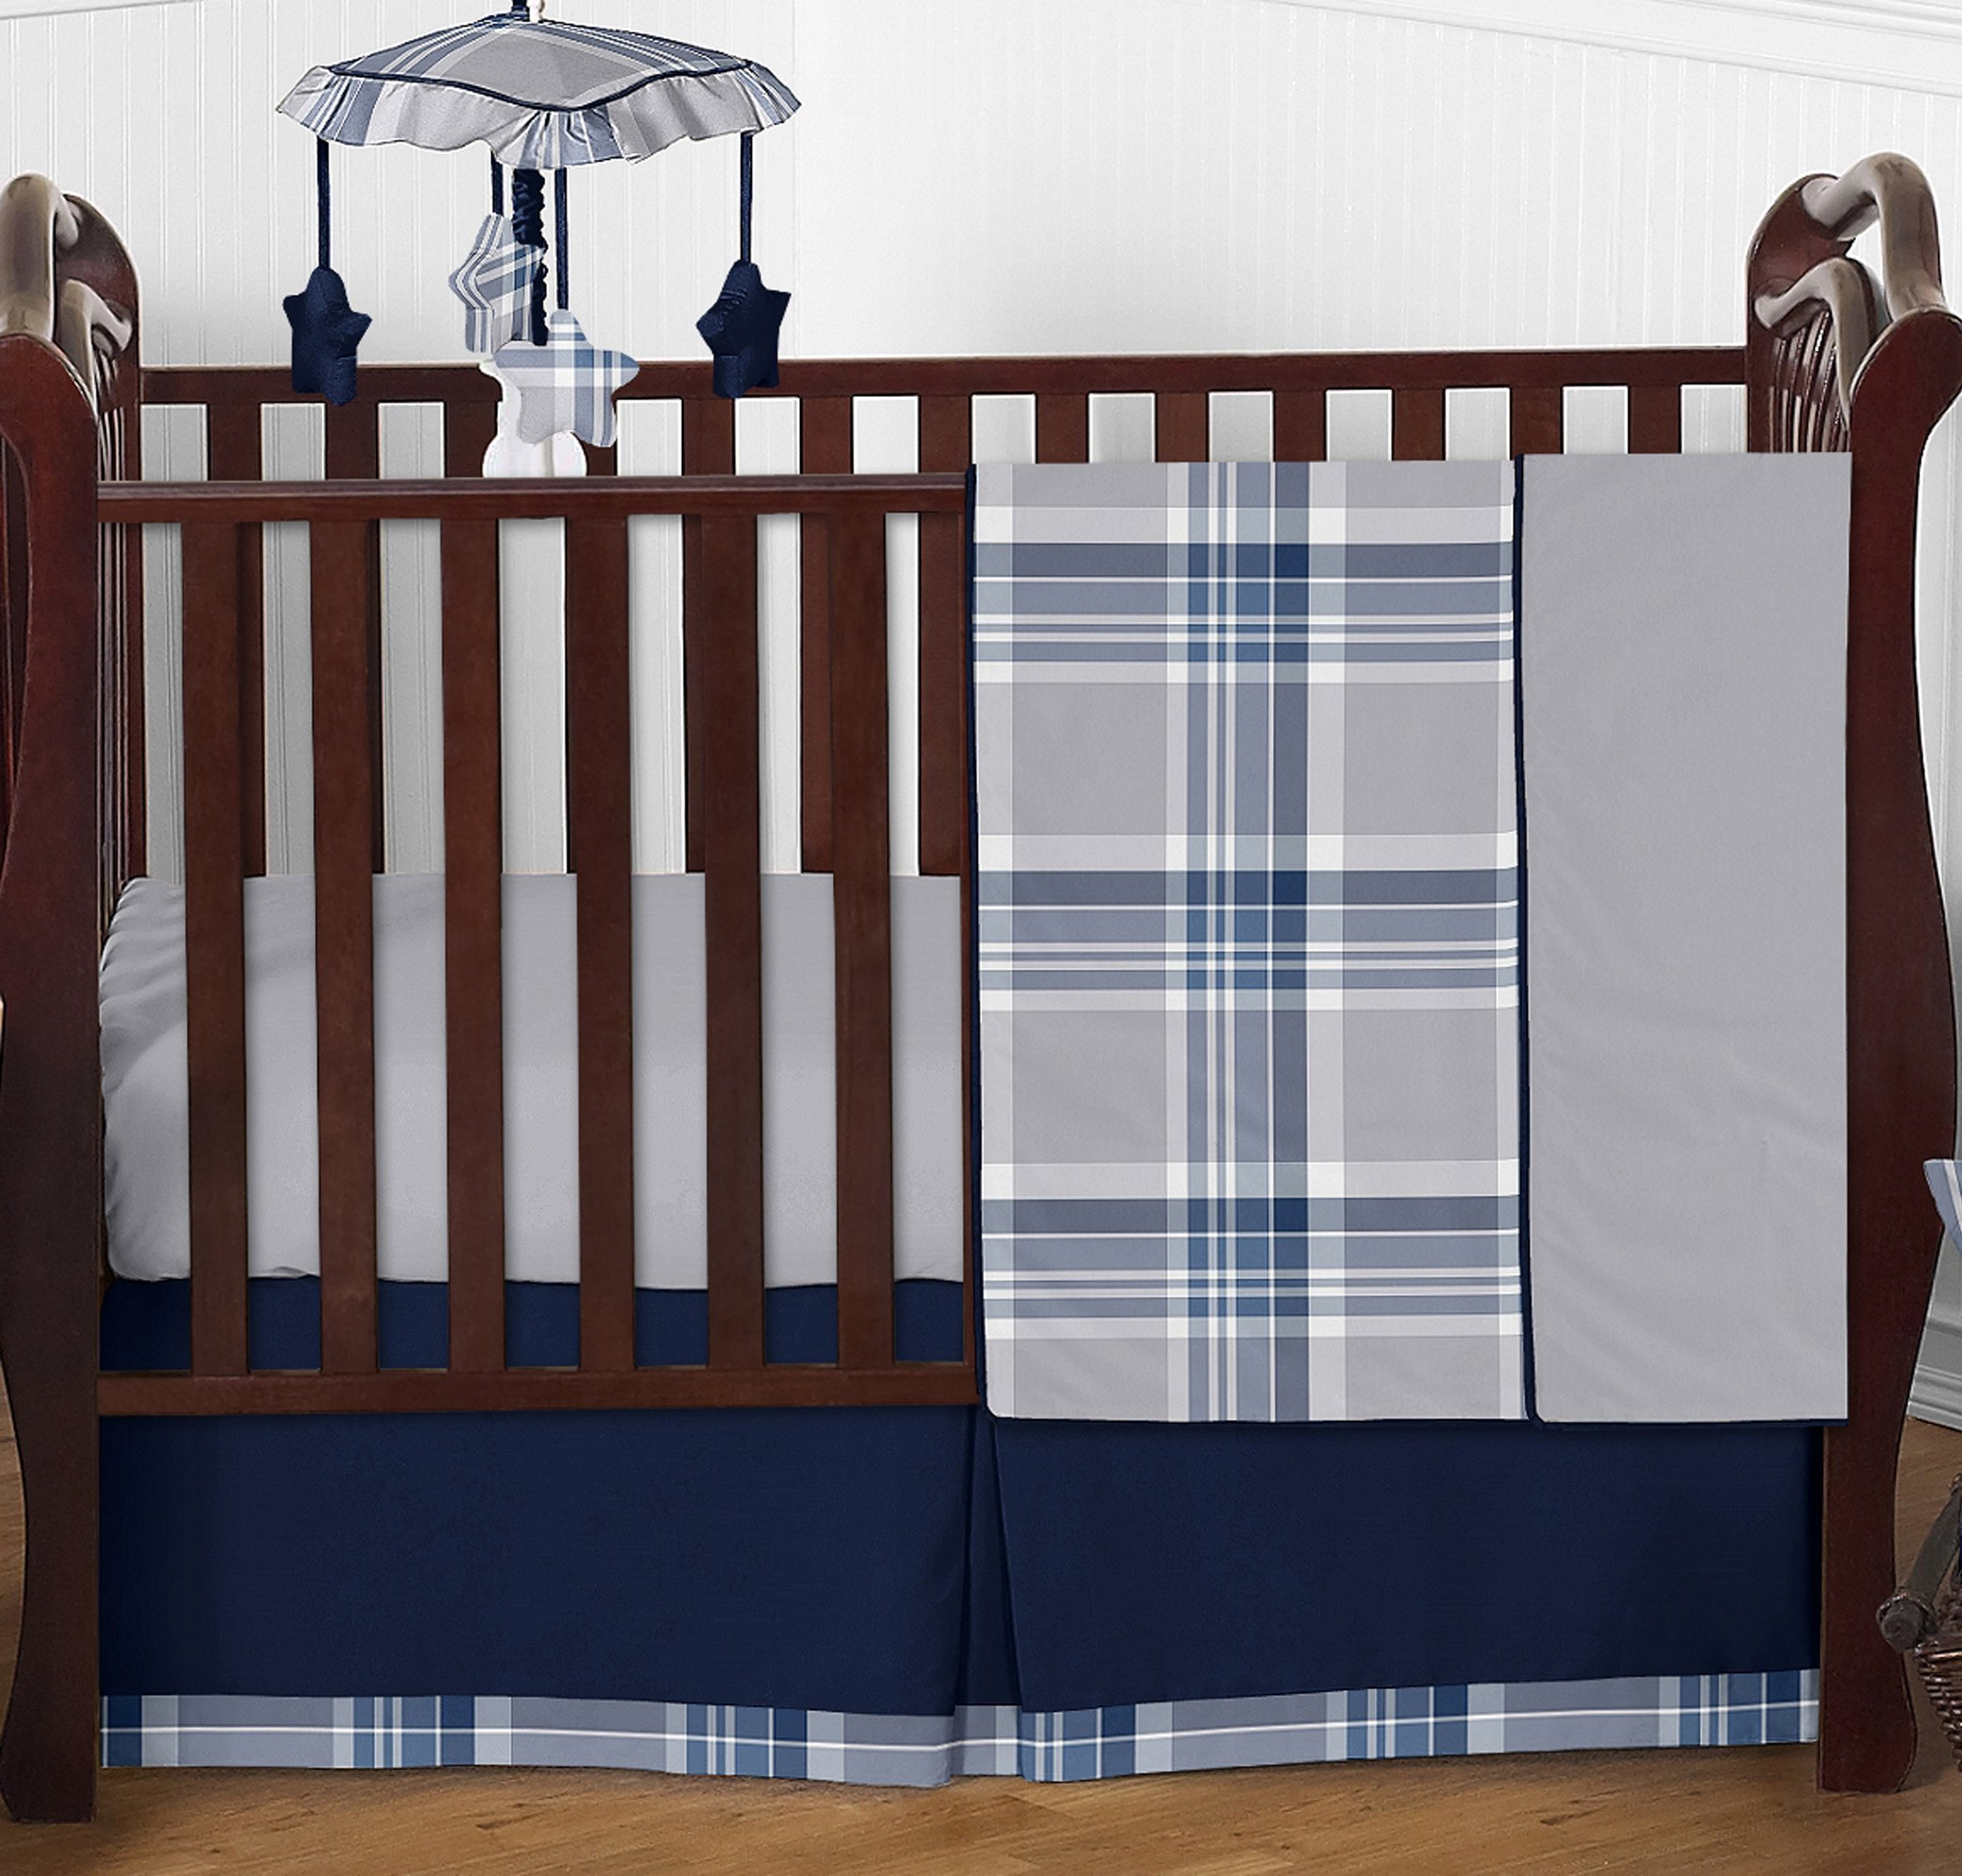 Rustic Designer Navy Blue and Gray Boys Plaid Baby Bedding 4 Piece Crib Set Without Bumper